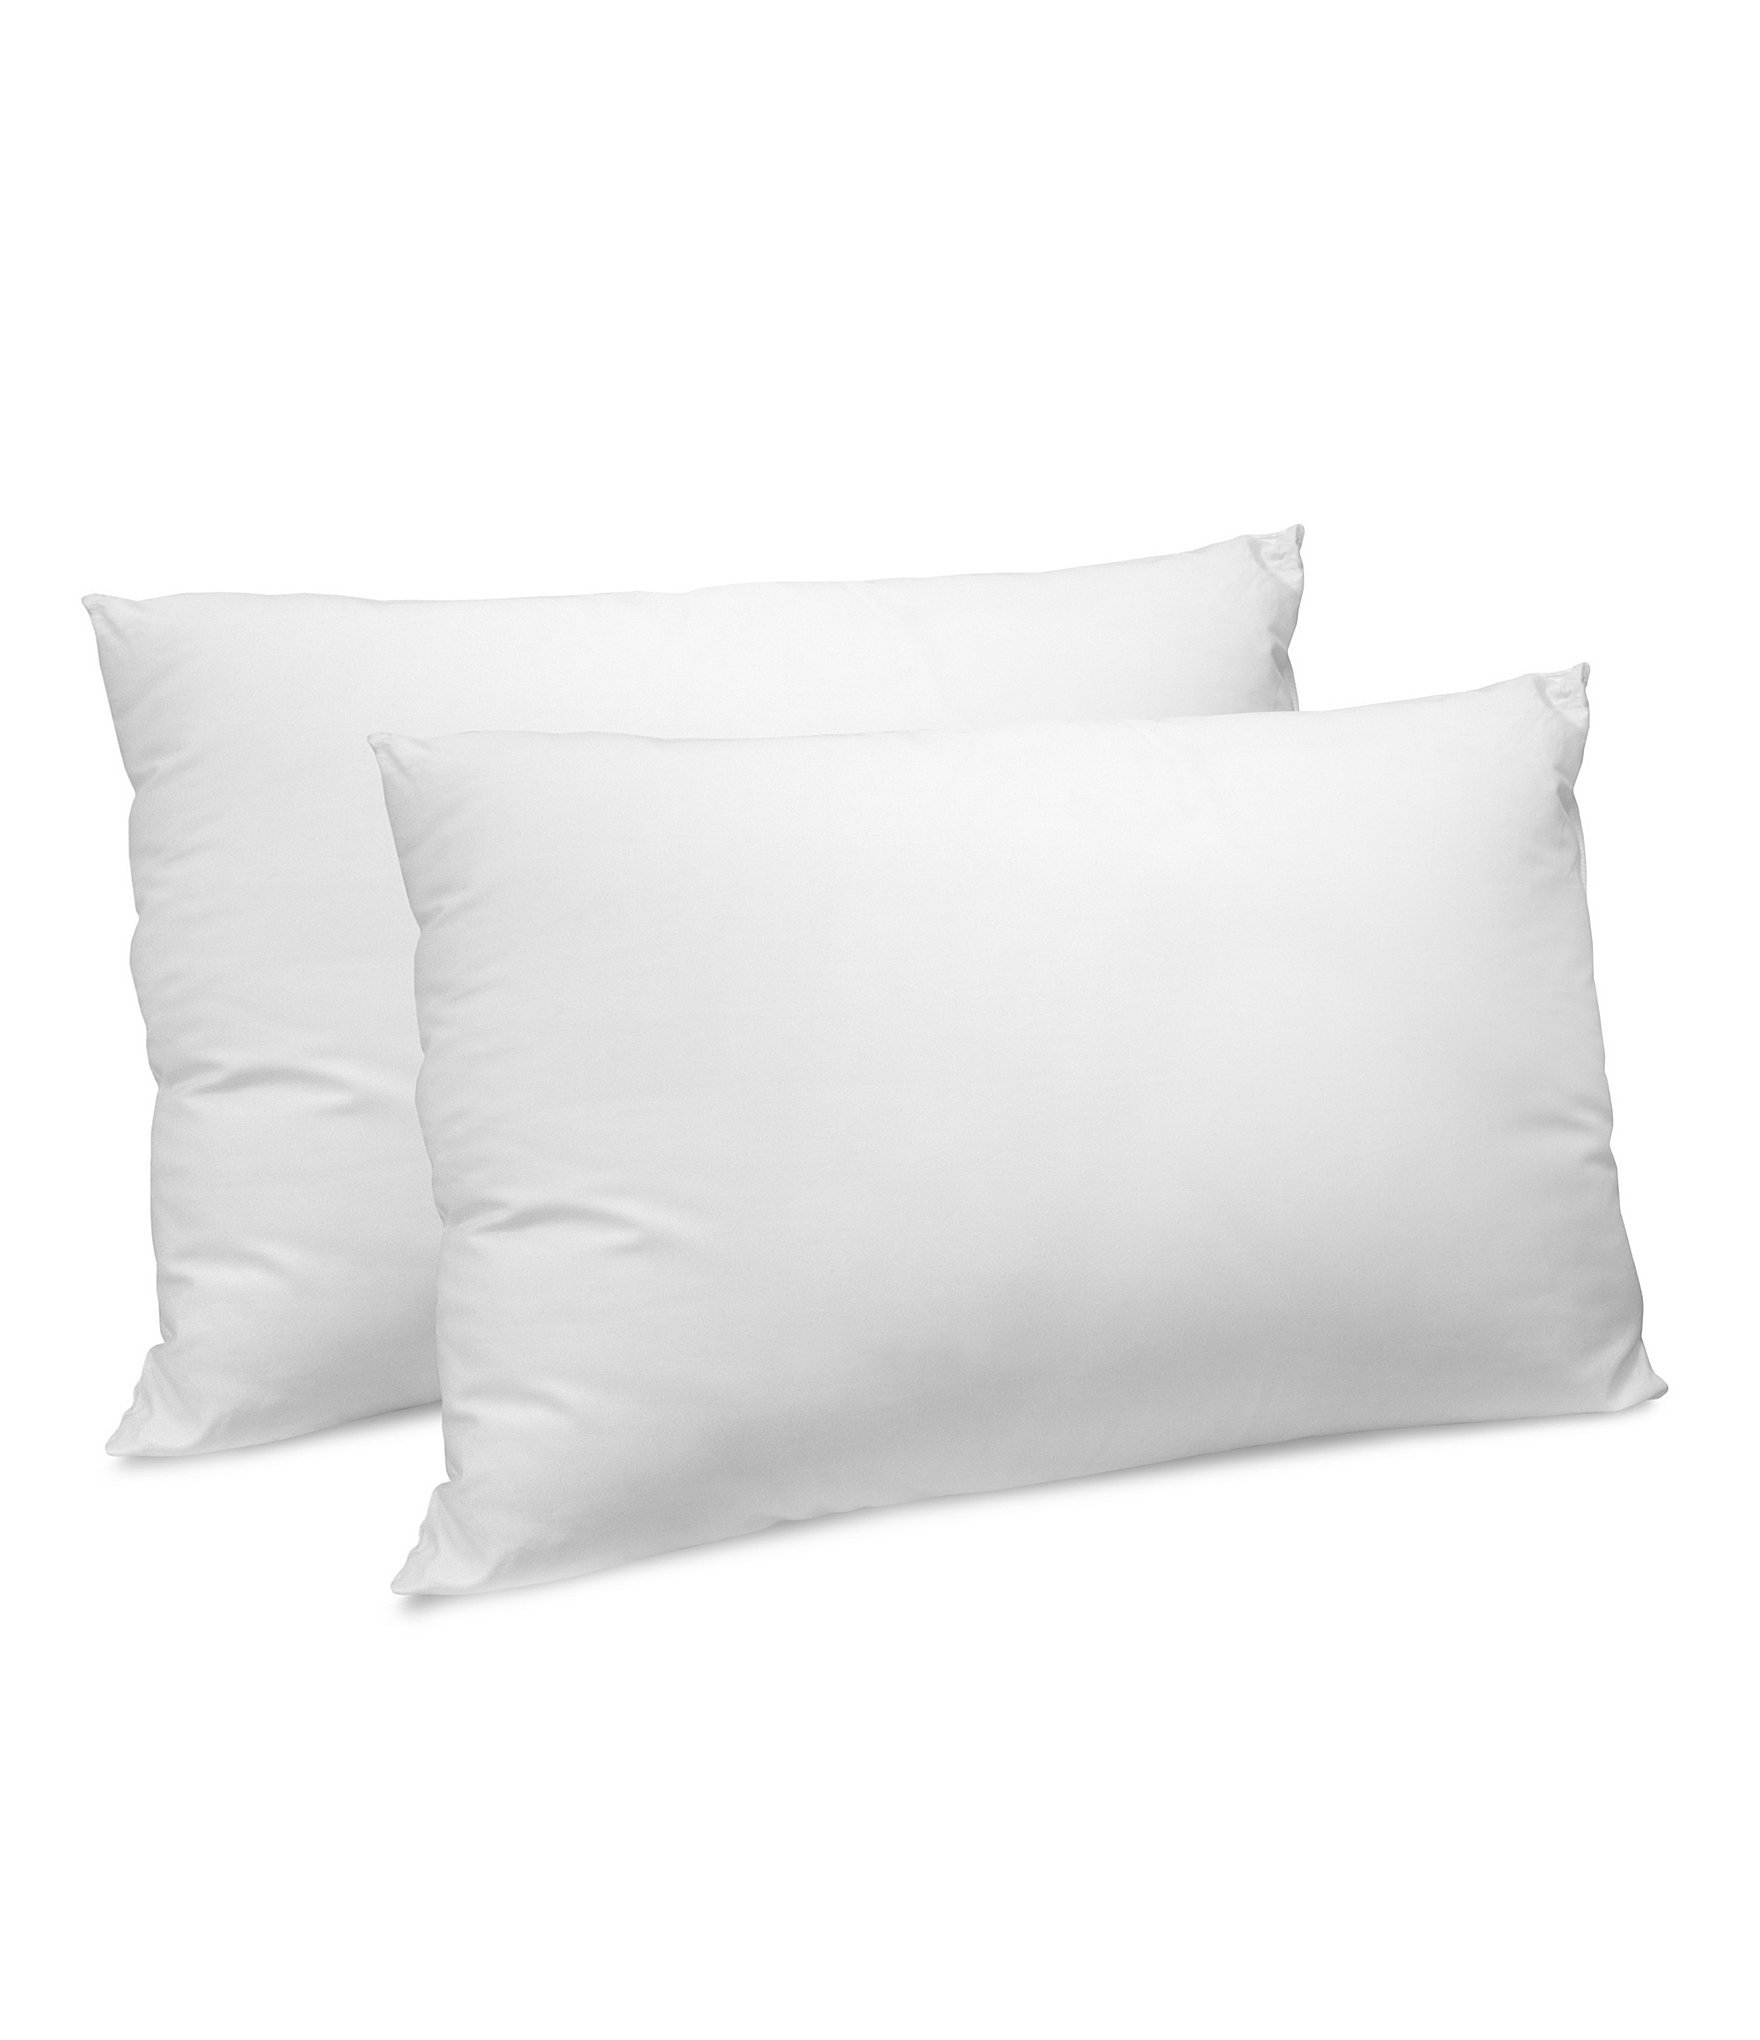 Extra Comfort Bed Pillow with Arms for Any Purpose: Sleep Upright Pillow | Bed Pillow With Arms | Oversized Bed Rest Pillow